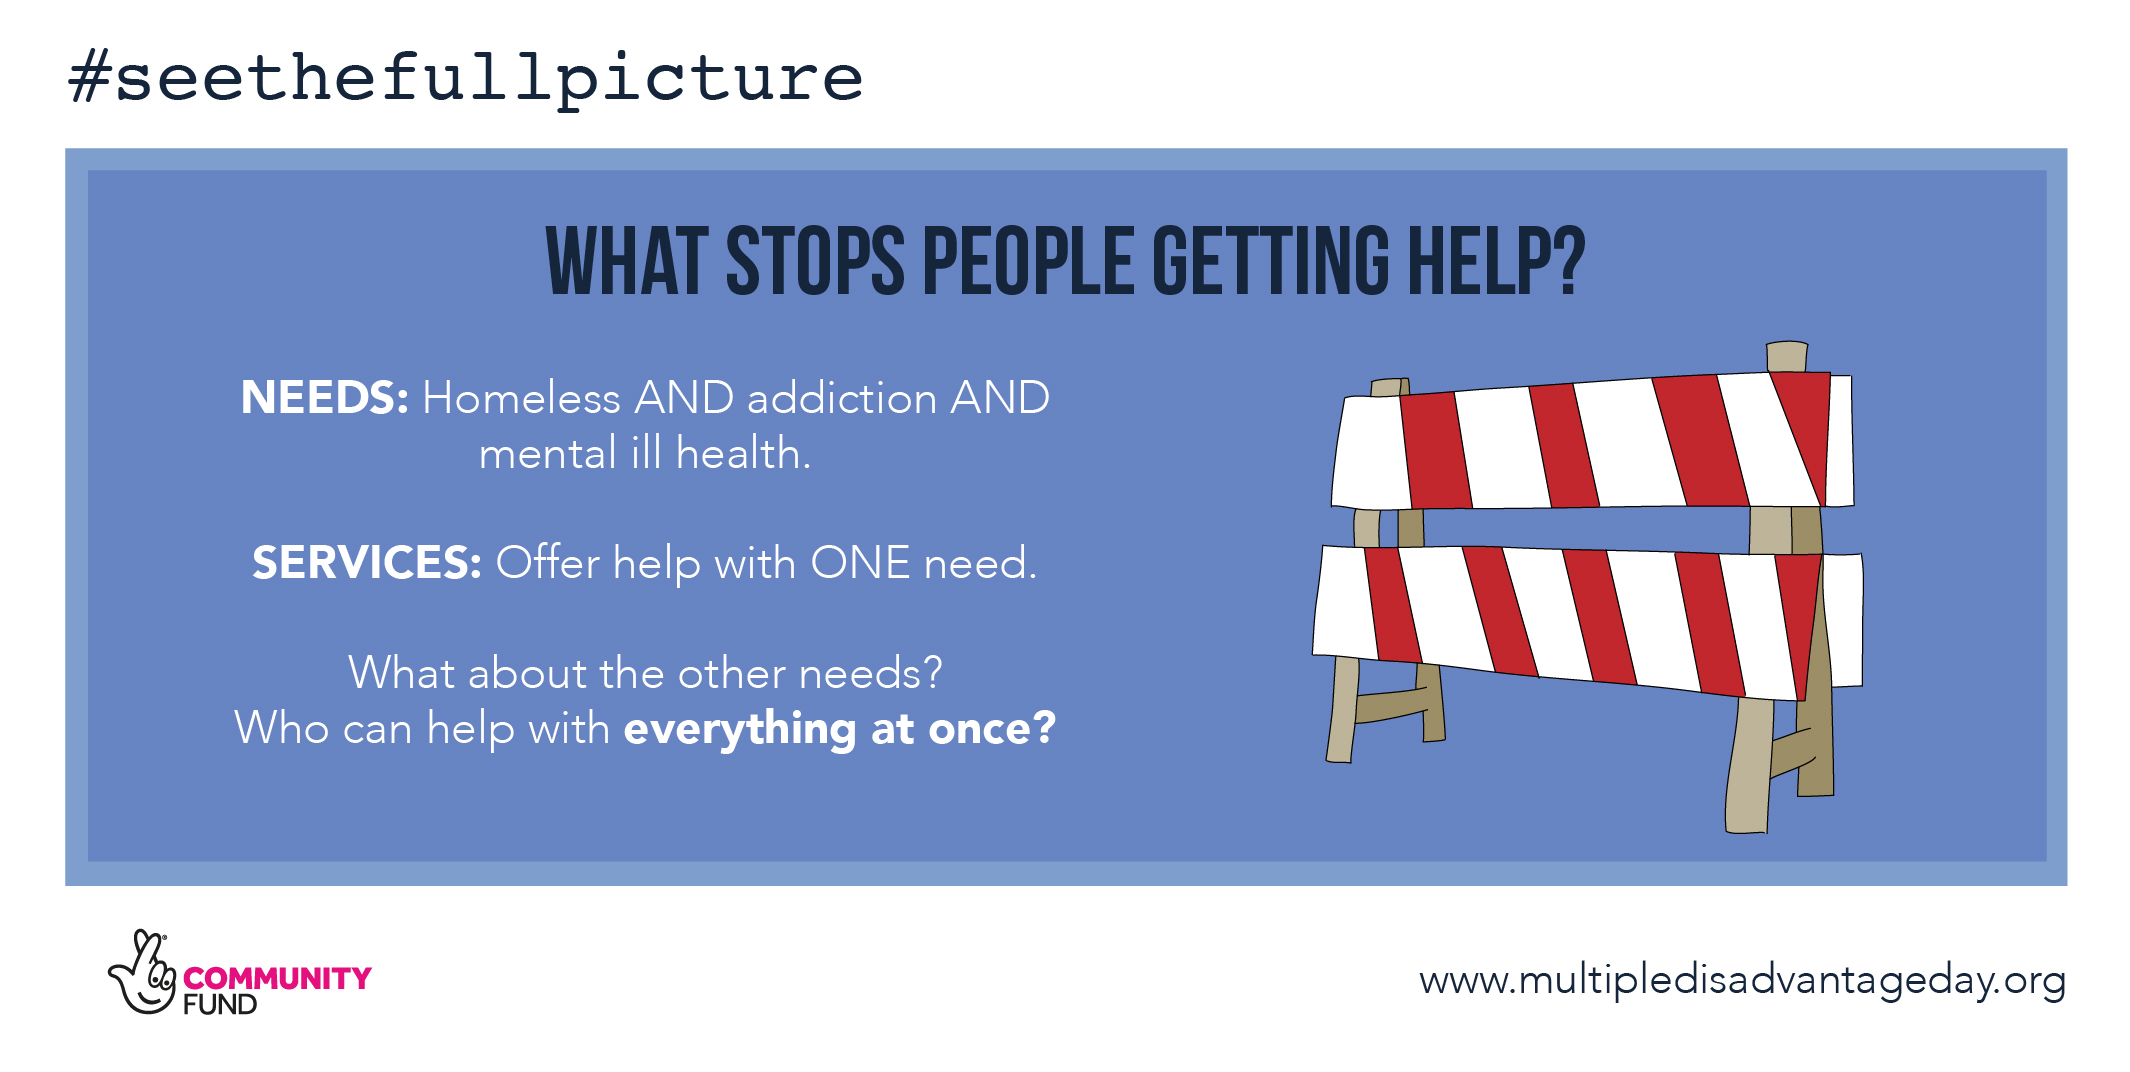 Multiple Disadvantage Day - #seethefullpicture - Campaign Graphics - What stops people getting help? - Barrier